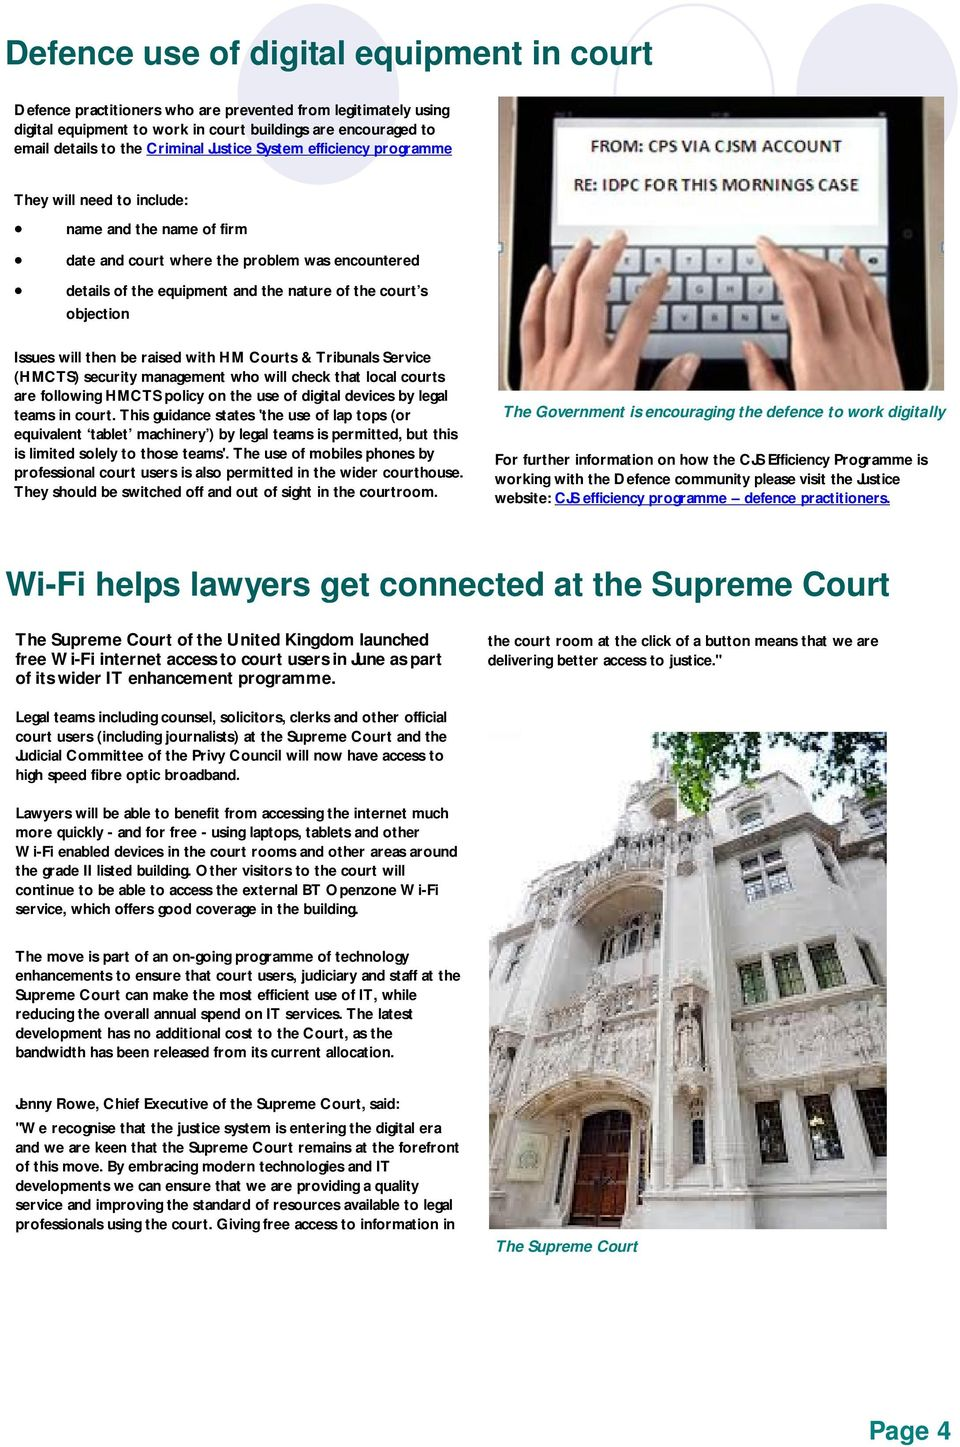 objection Issues will then be raised with HM Courts & Tribunals Service (HMCTS) security management who will check that local courts are following HMCTS policy on the use of digital devices by legal